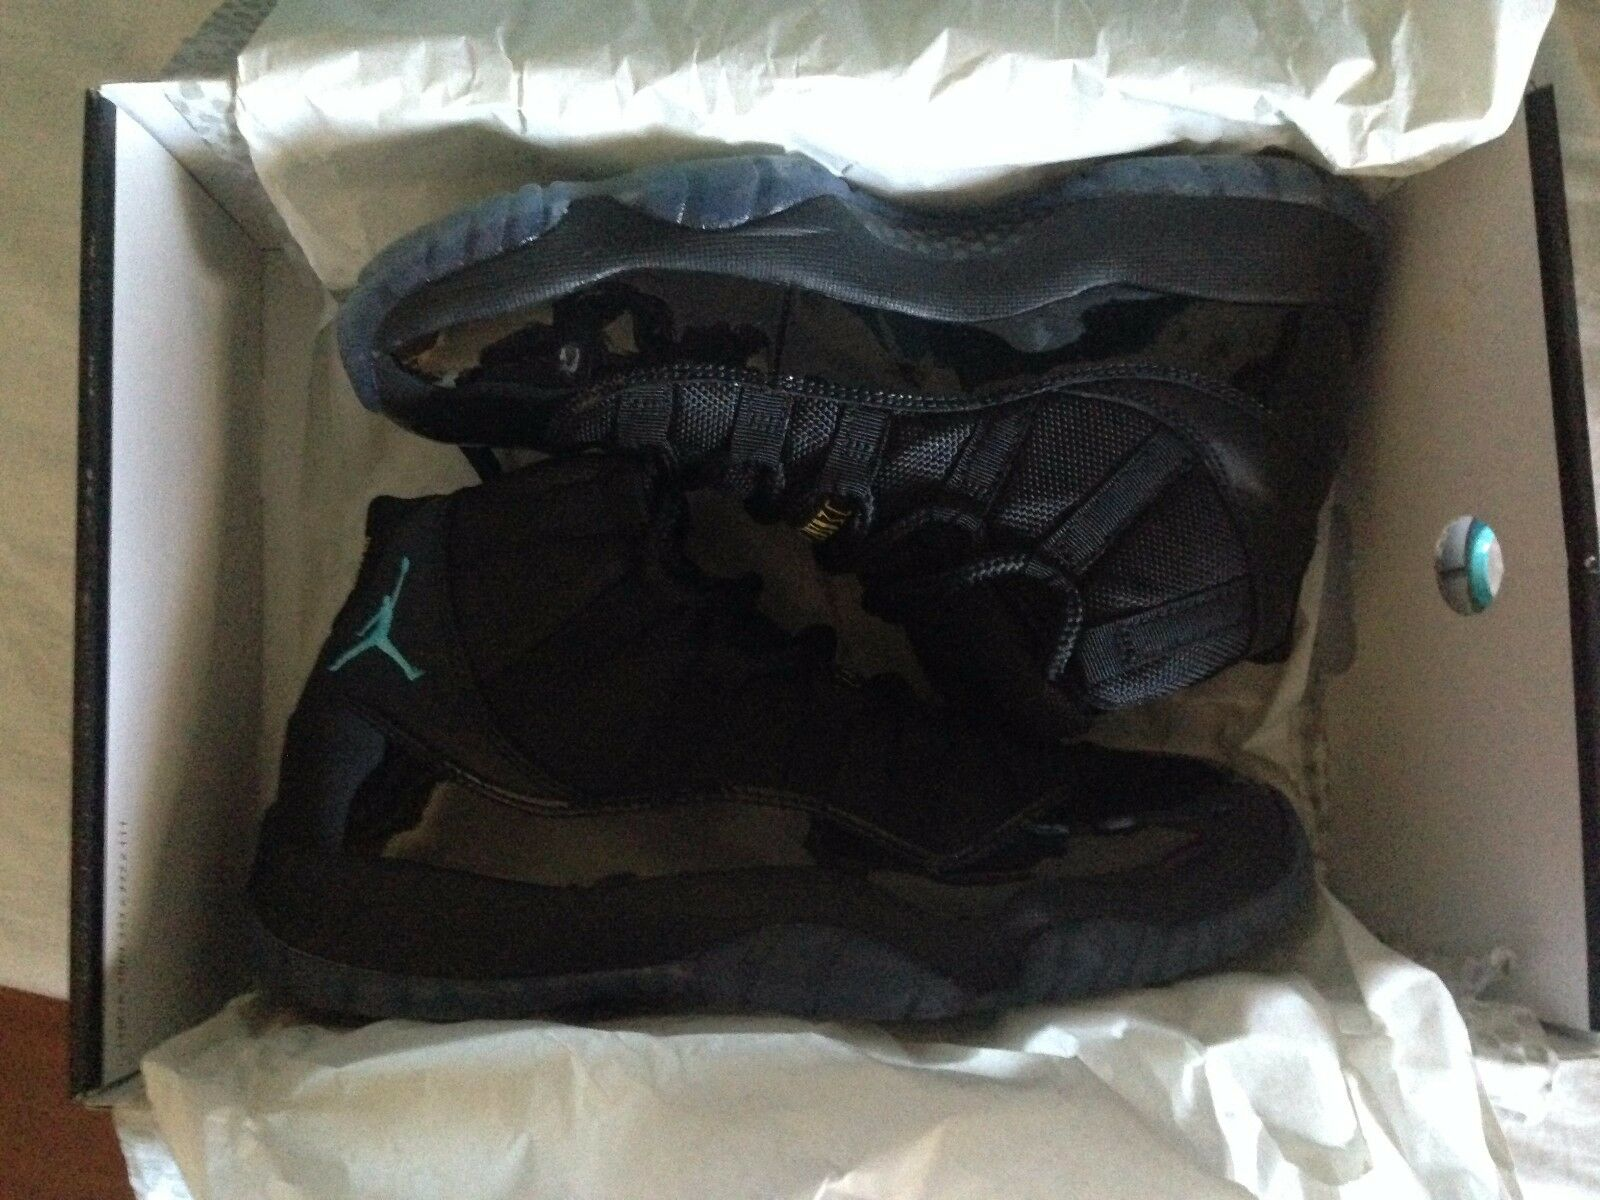 Nike Air Jordan 11 Retro Black/Gamma Blue-BLCK-VRSTY MZ 378037 006 SIZE 7 US